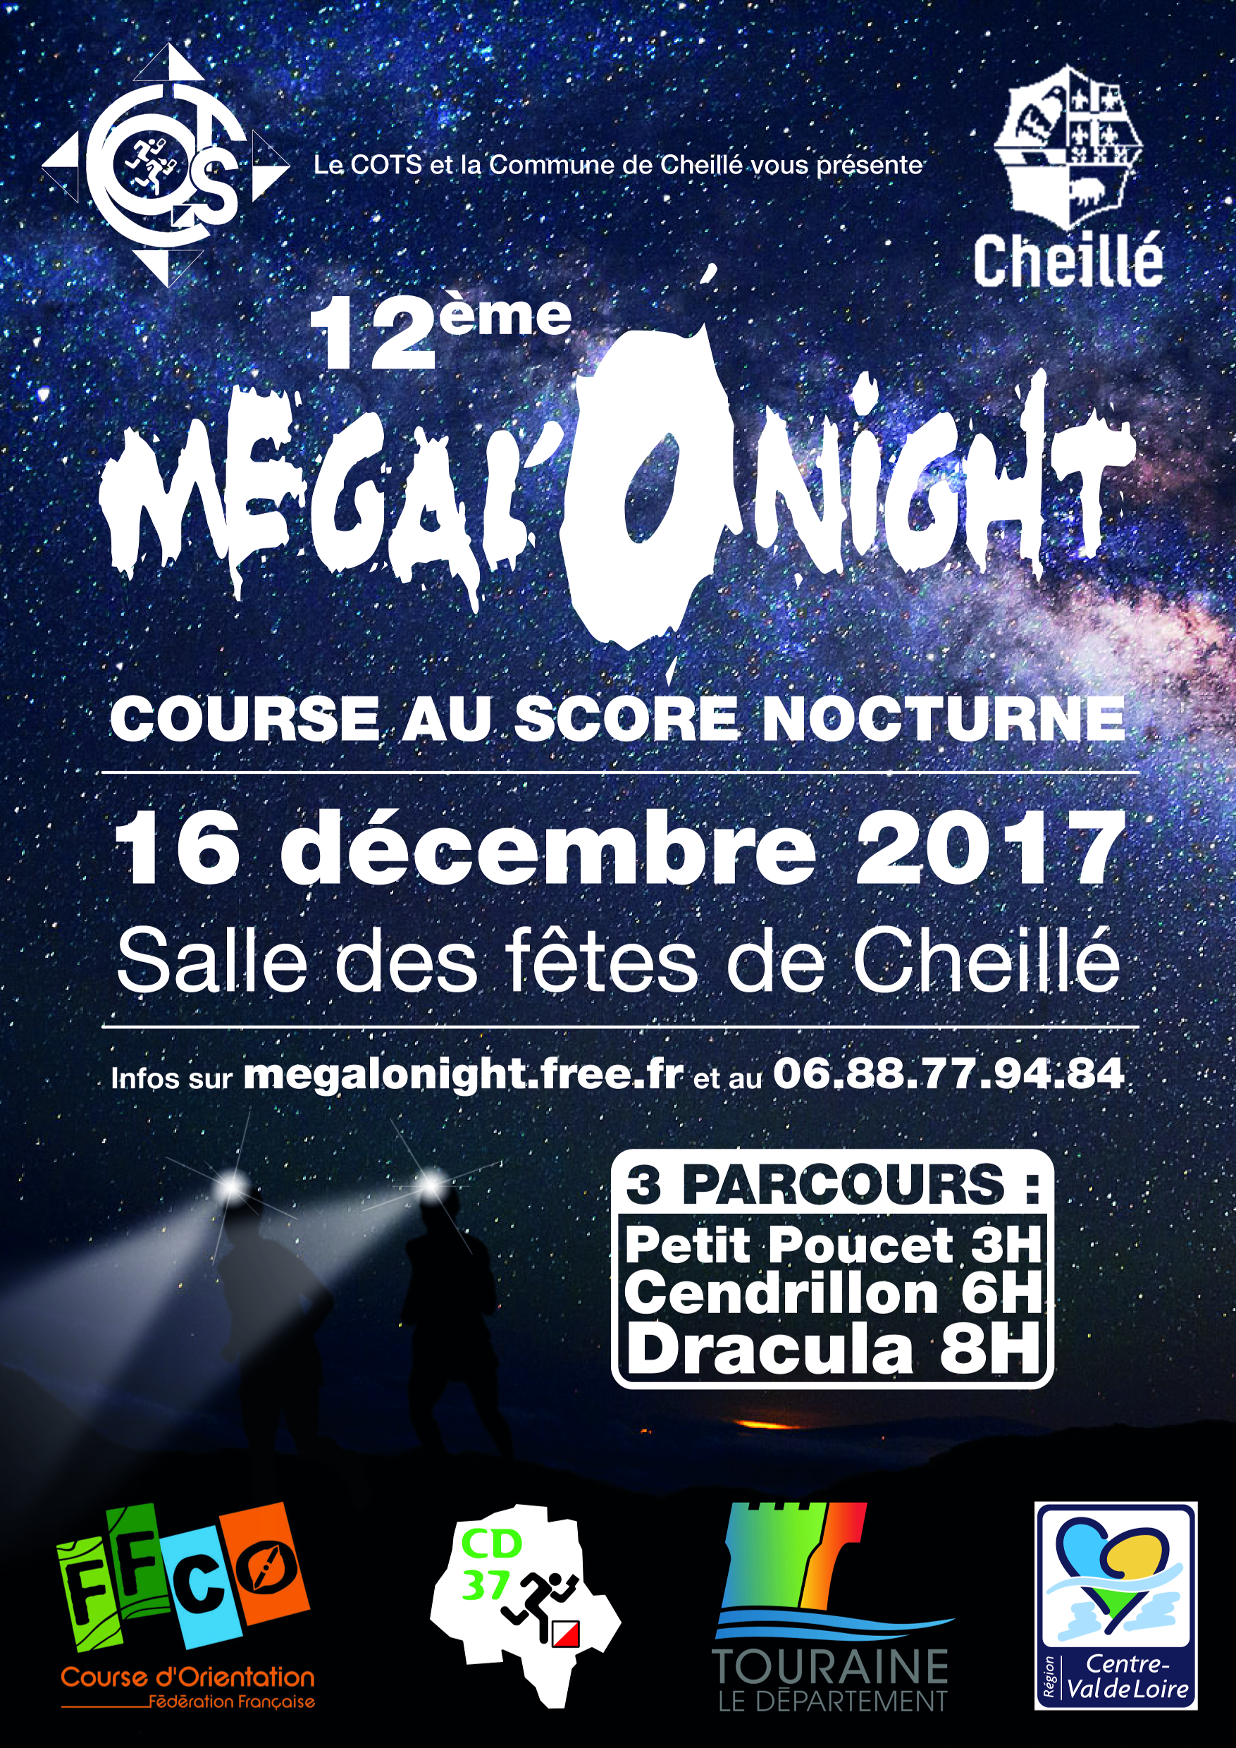 2017_affiche_MegalO_Night_A6.jpg